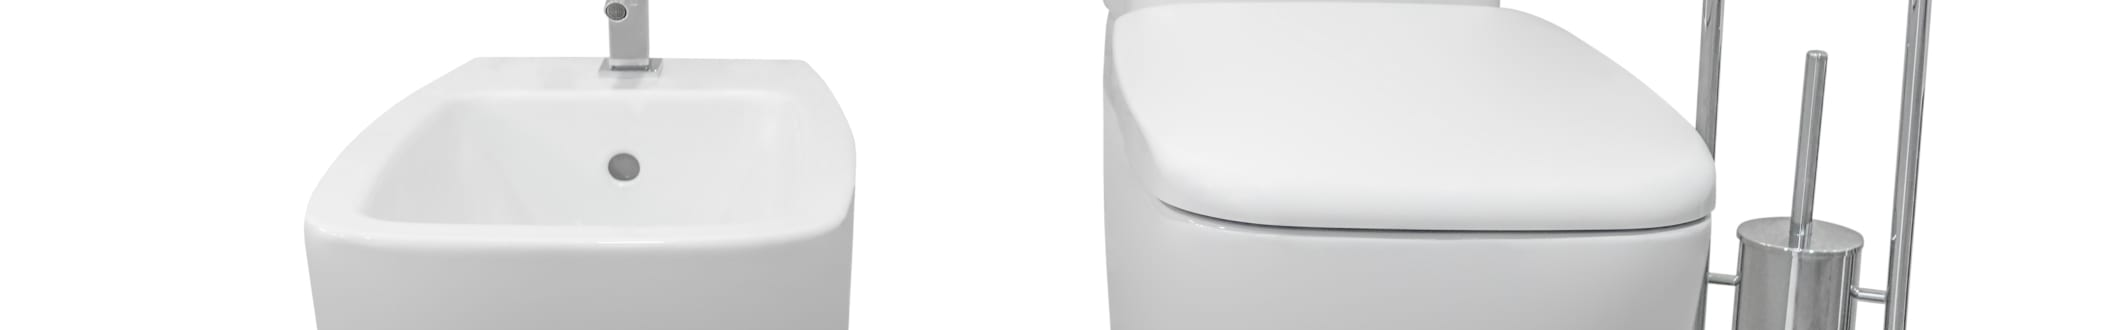 Image of white toilet and bidet isolated on white background